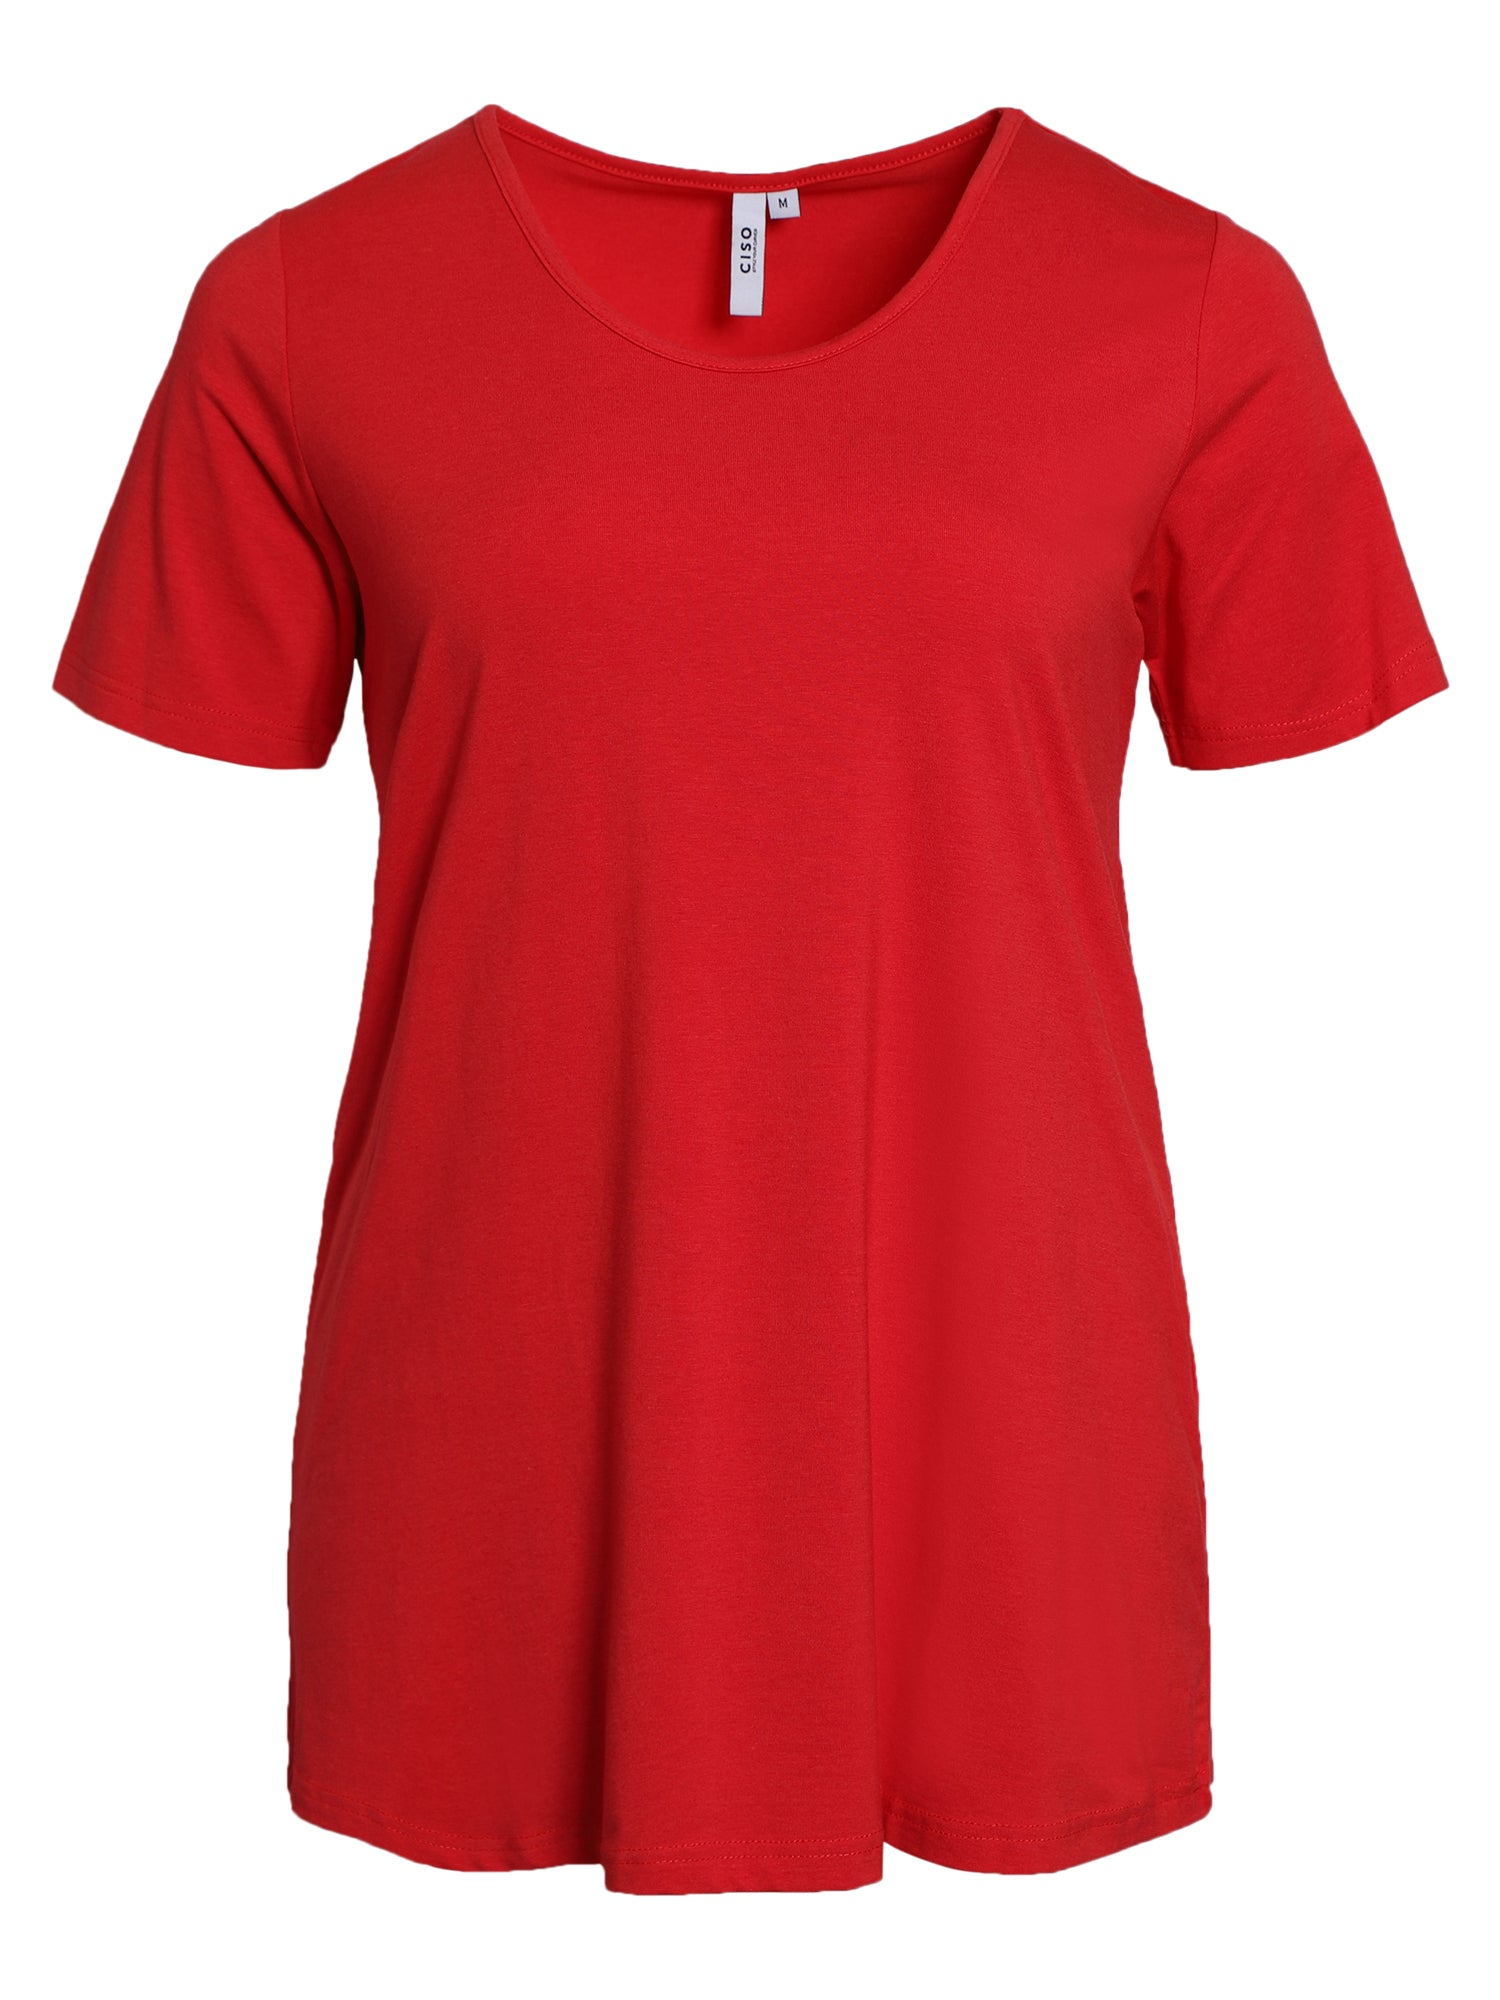 Image of   Basis T-shirt i A-facon med korte ærmer - Chinese Red